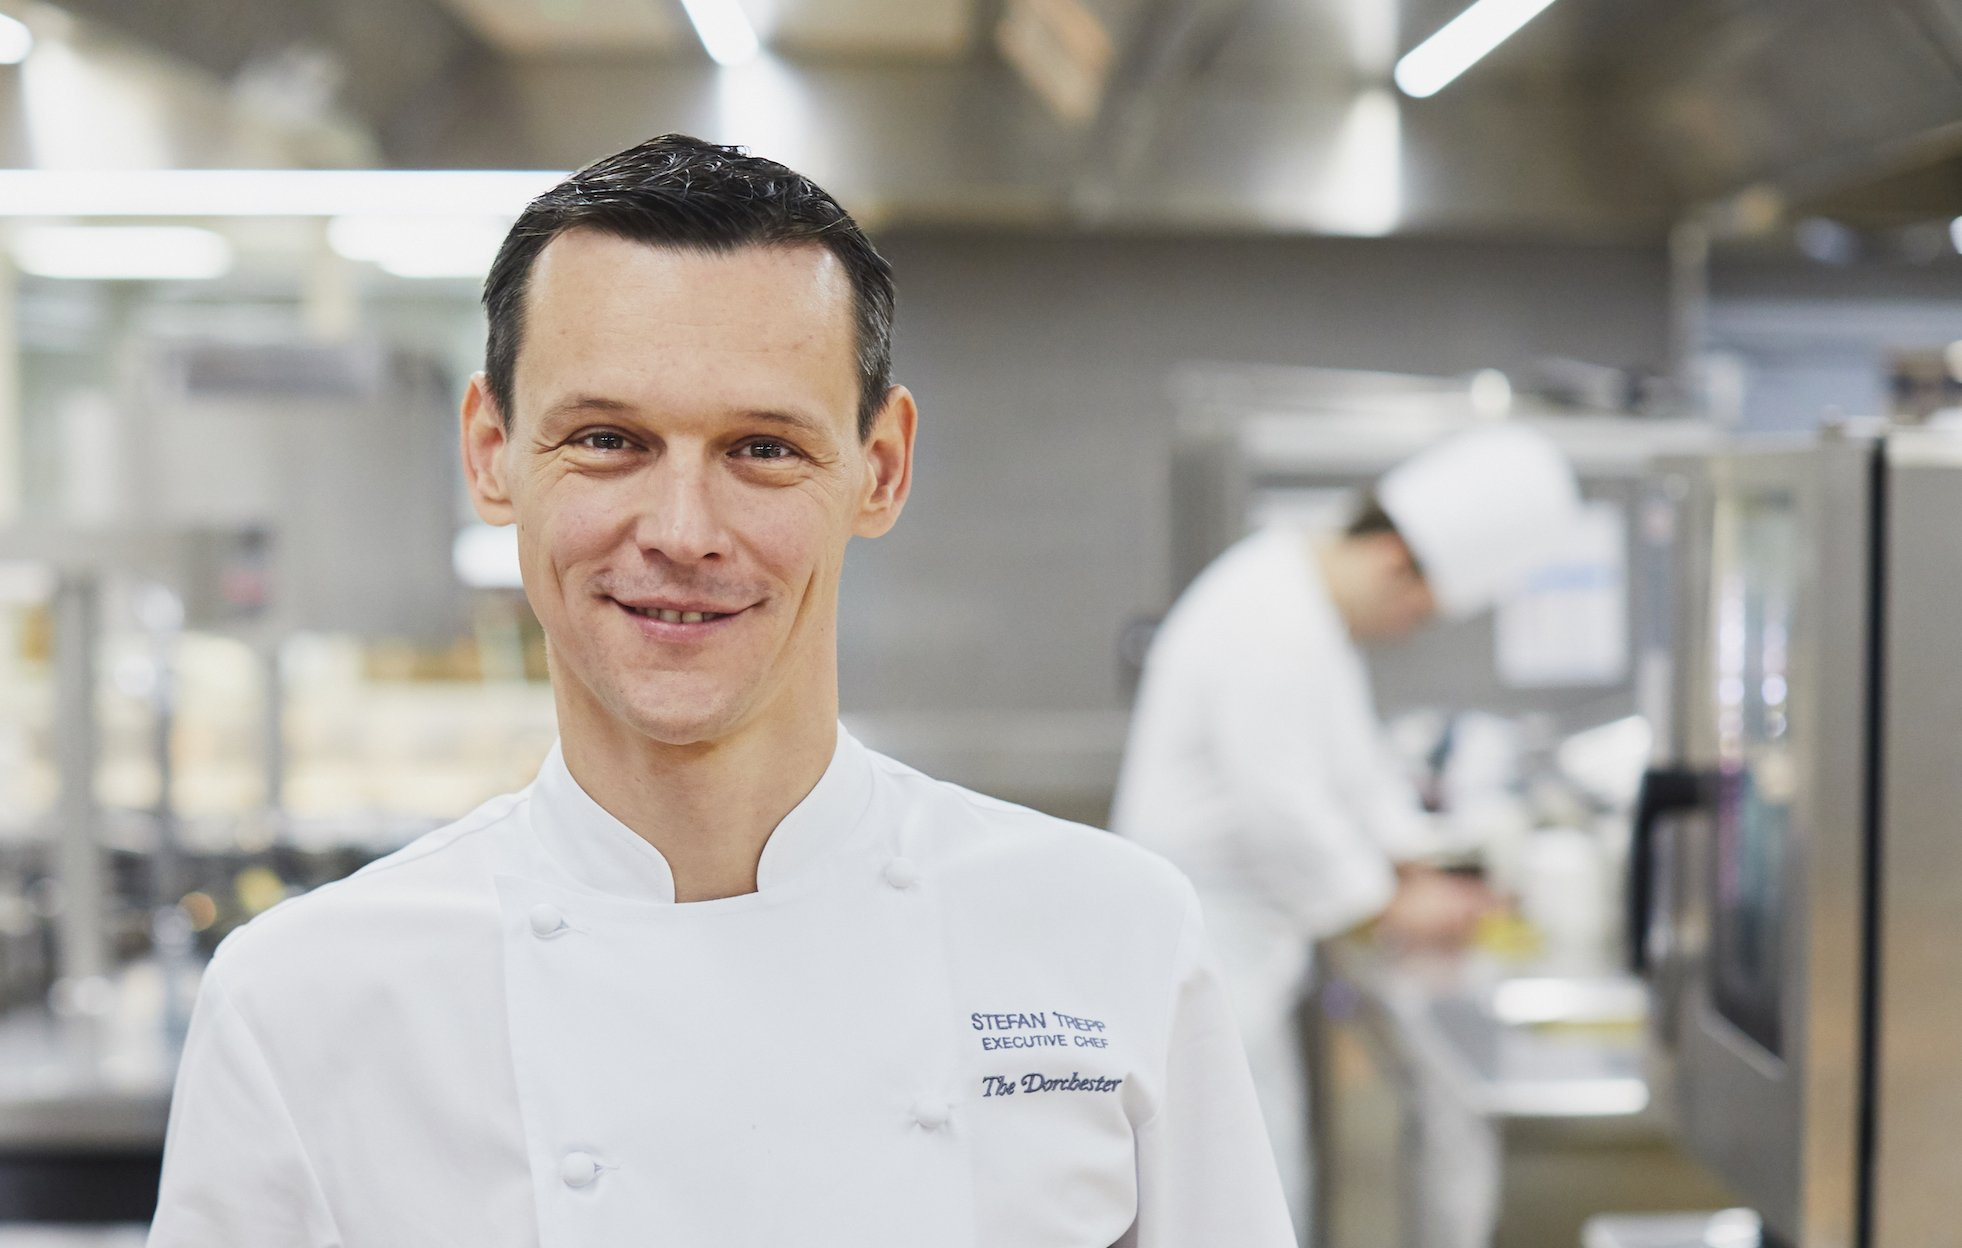 Interview With Stefan Trepp, Executive Chef At The Dorchester